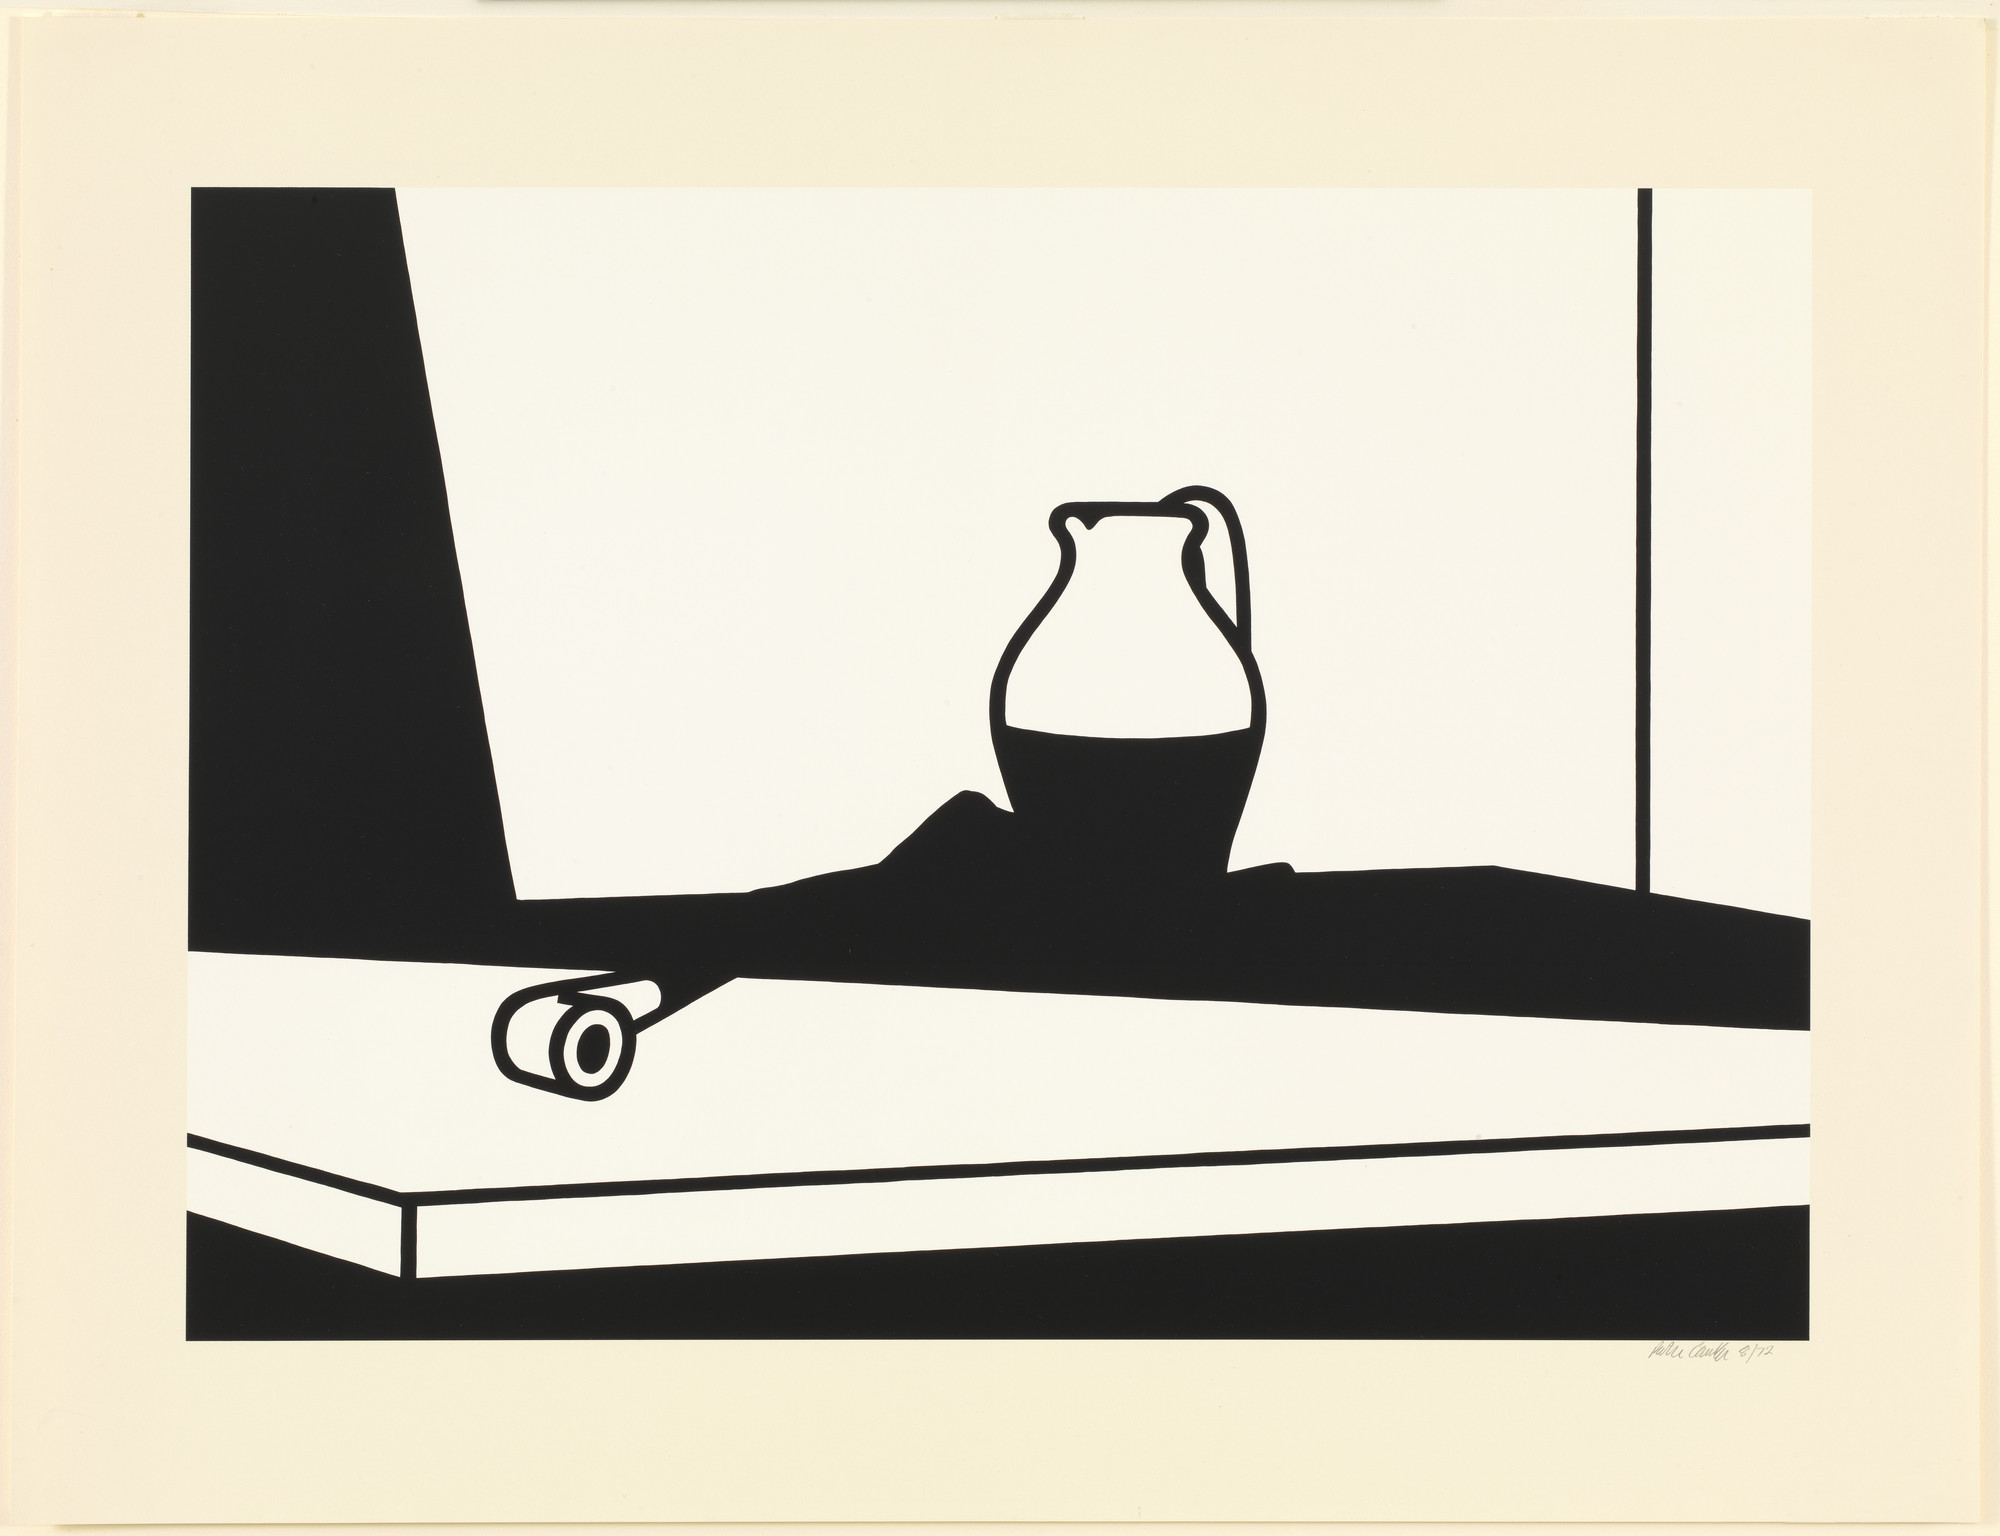 Patrick Caulfield. Pipe and Jug. (1973)